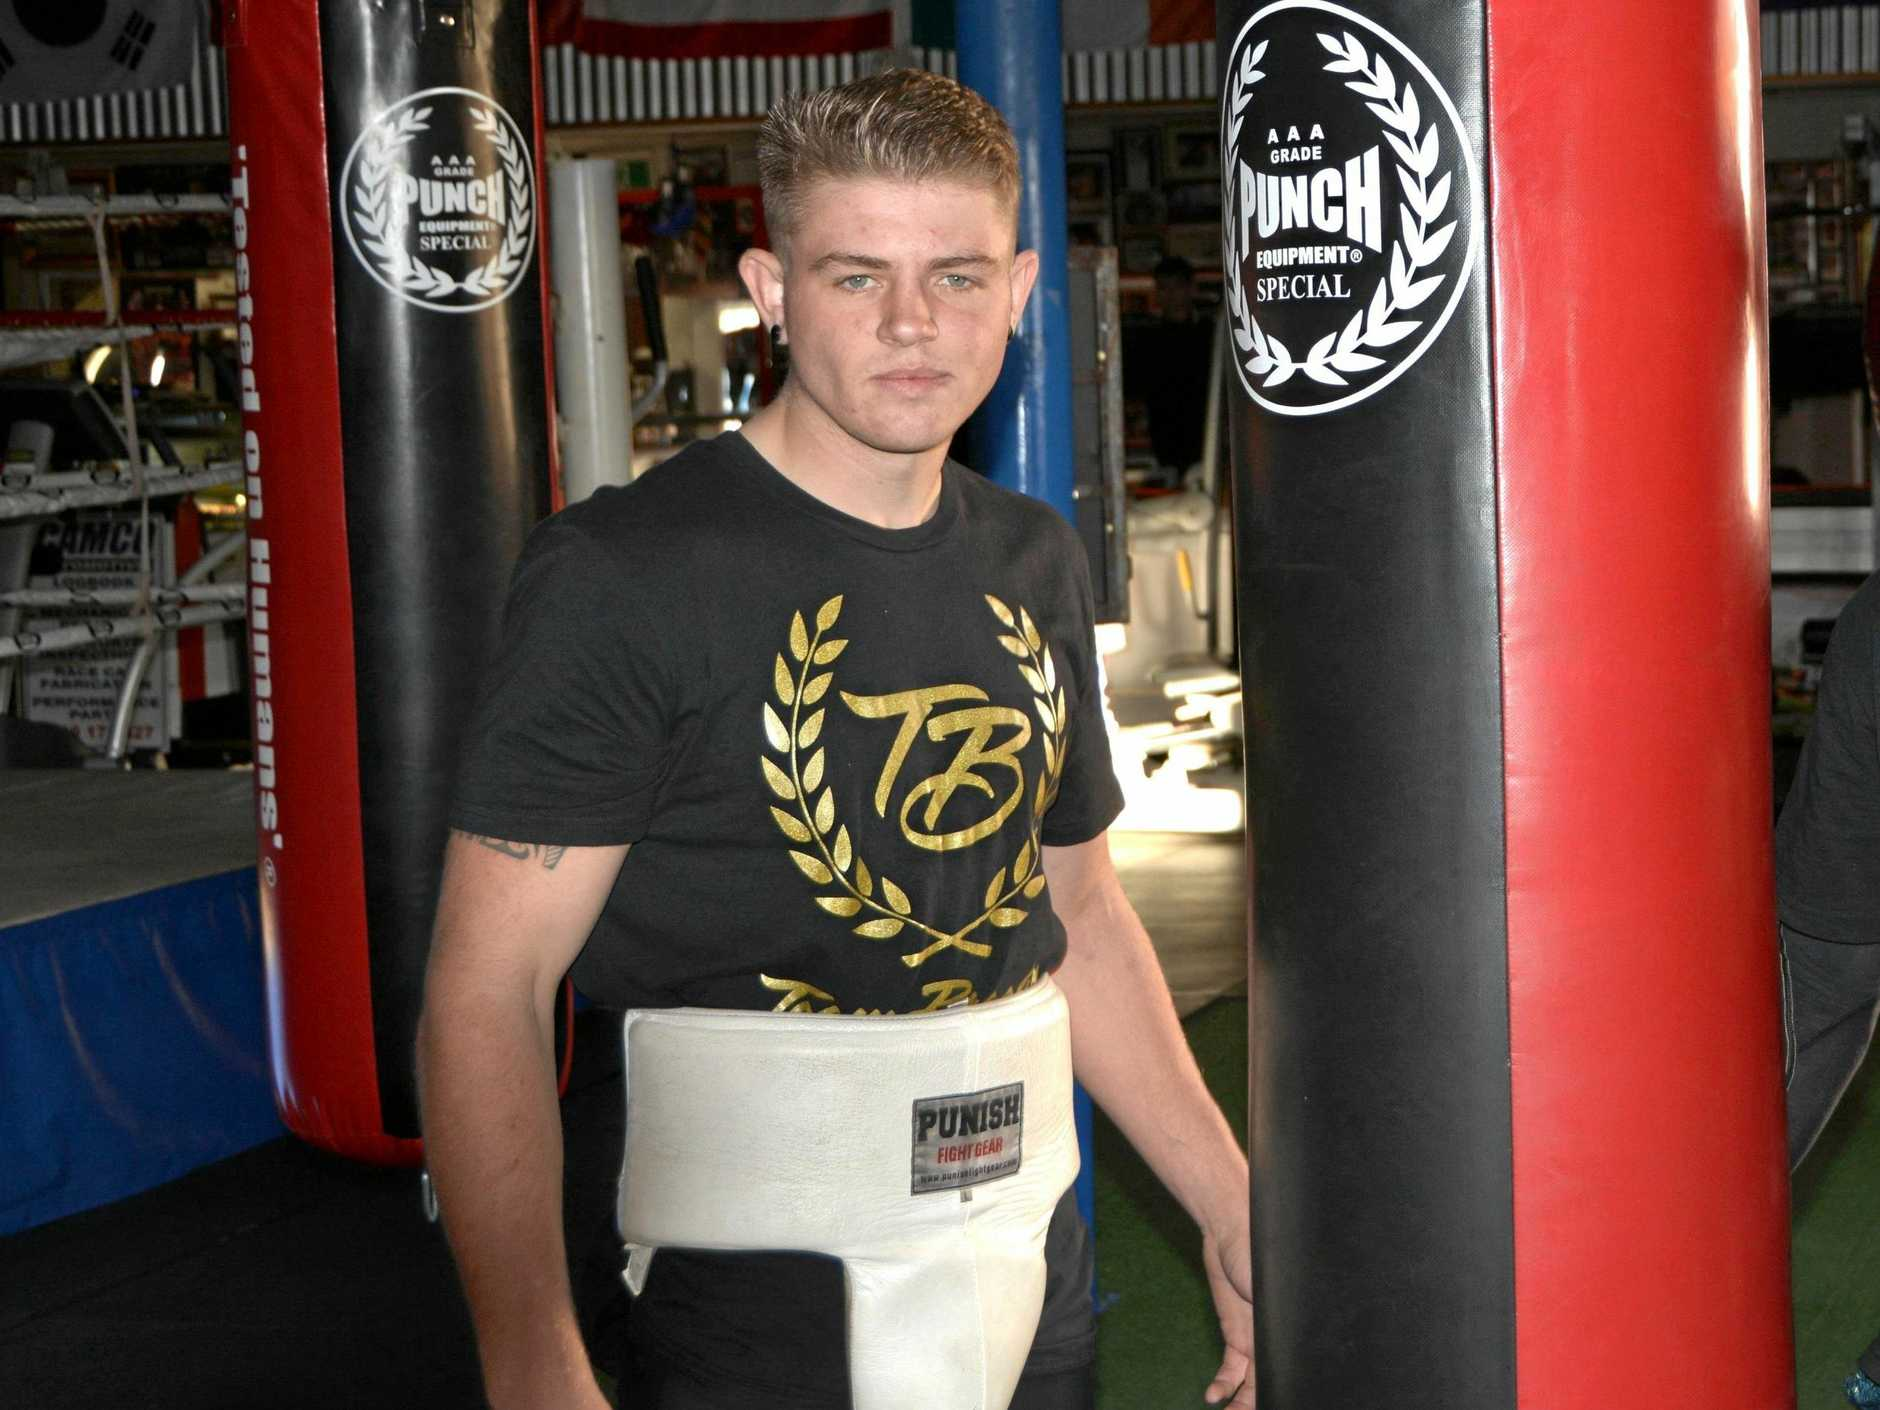 Exciting Toowoomba prospect Chris Brackin returns to the ring at Rumours International next Saturday night.